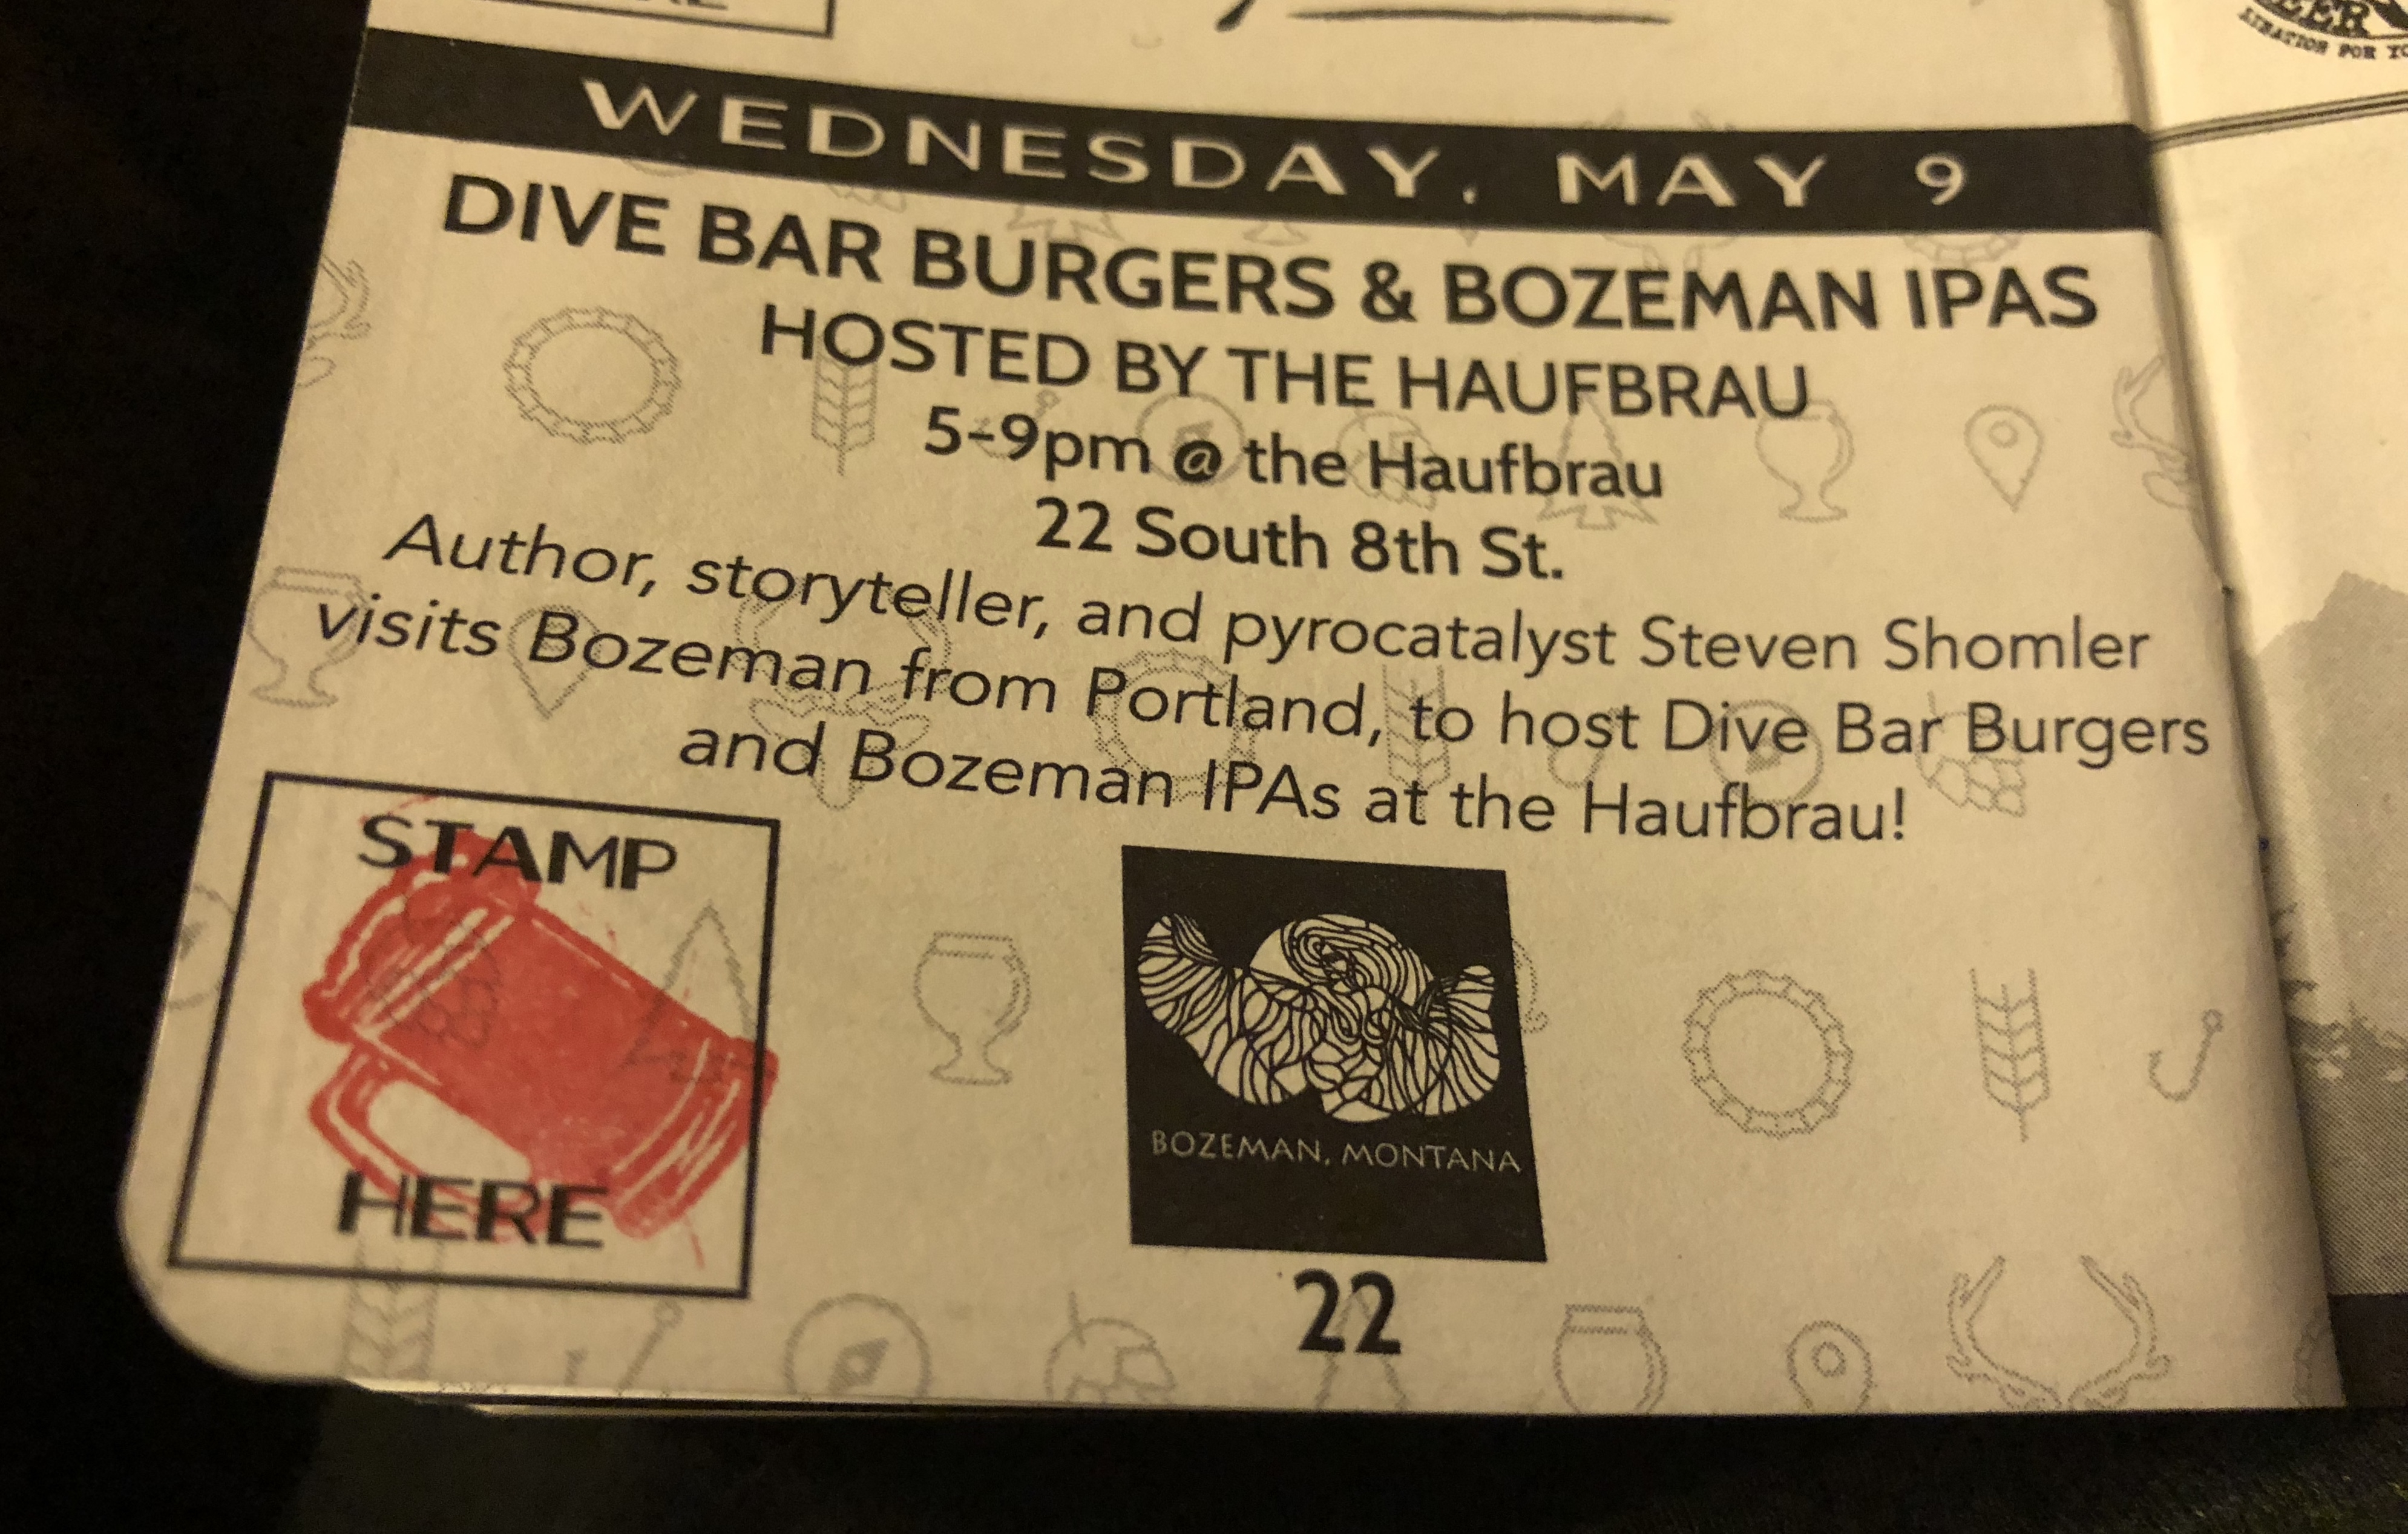 Don Frye Haufbrau House Dive Bar – Portland Culinary Podcast Episode 41 by Steven Shomler